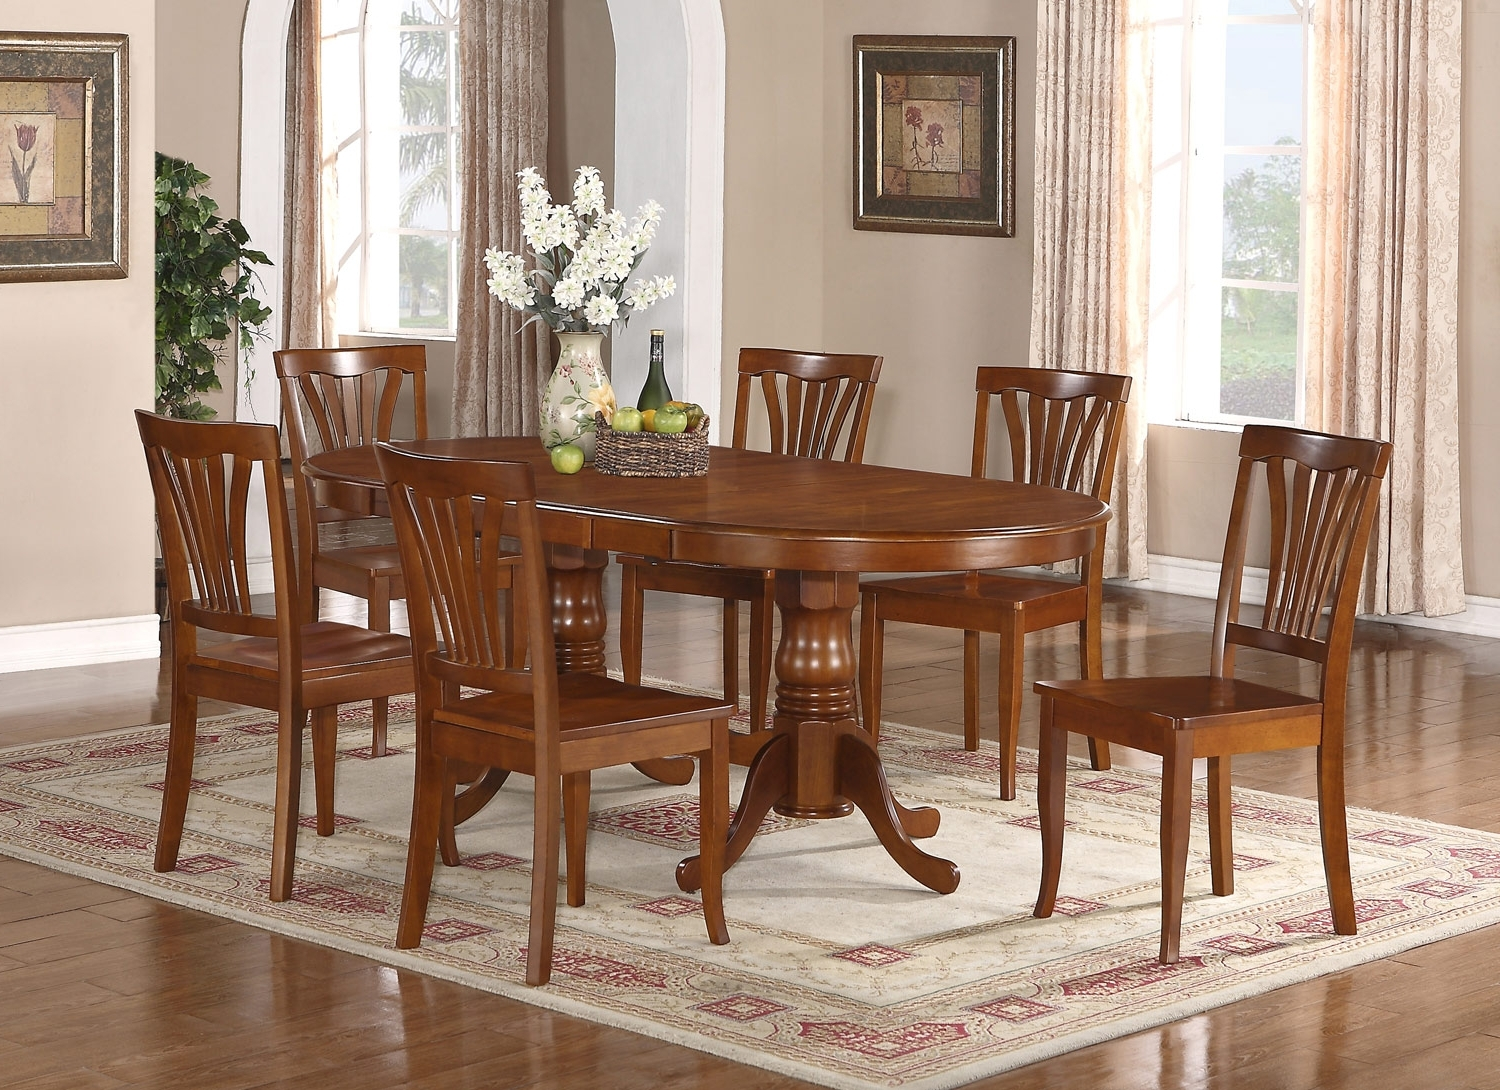 7Pc Oval Newton Dining Room Set Extension Leaf Table 6 Chairs 42 Inside Most Recently Released 6 Chair Dining Table Sets (Gallery 4 of 25)